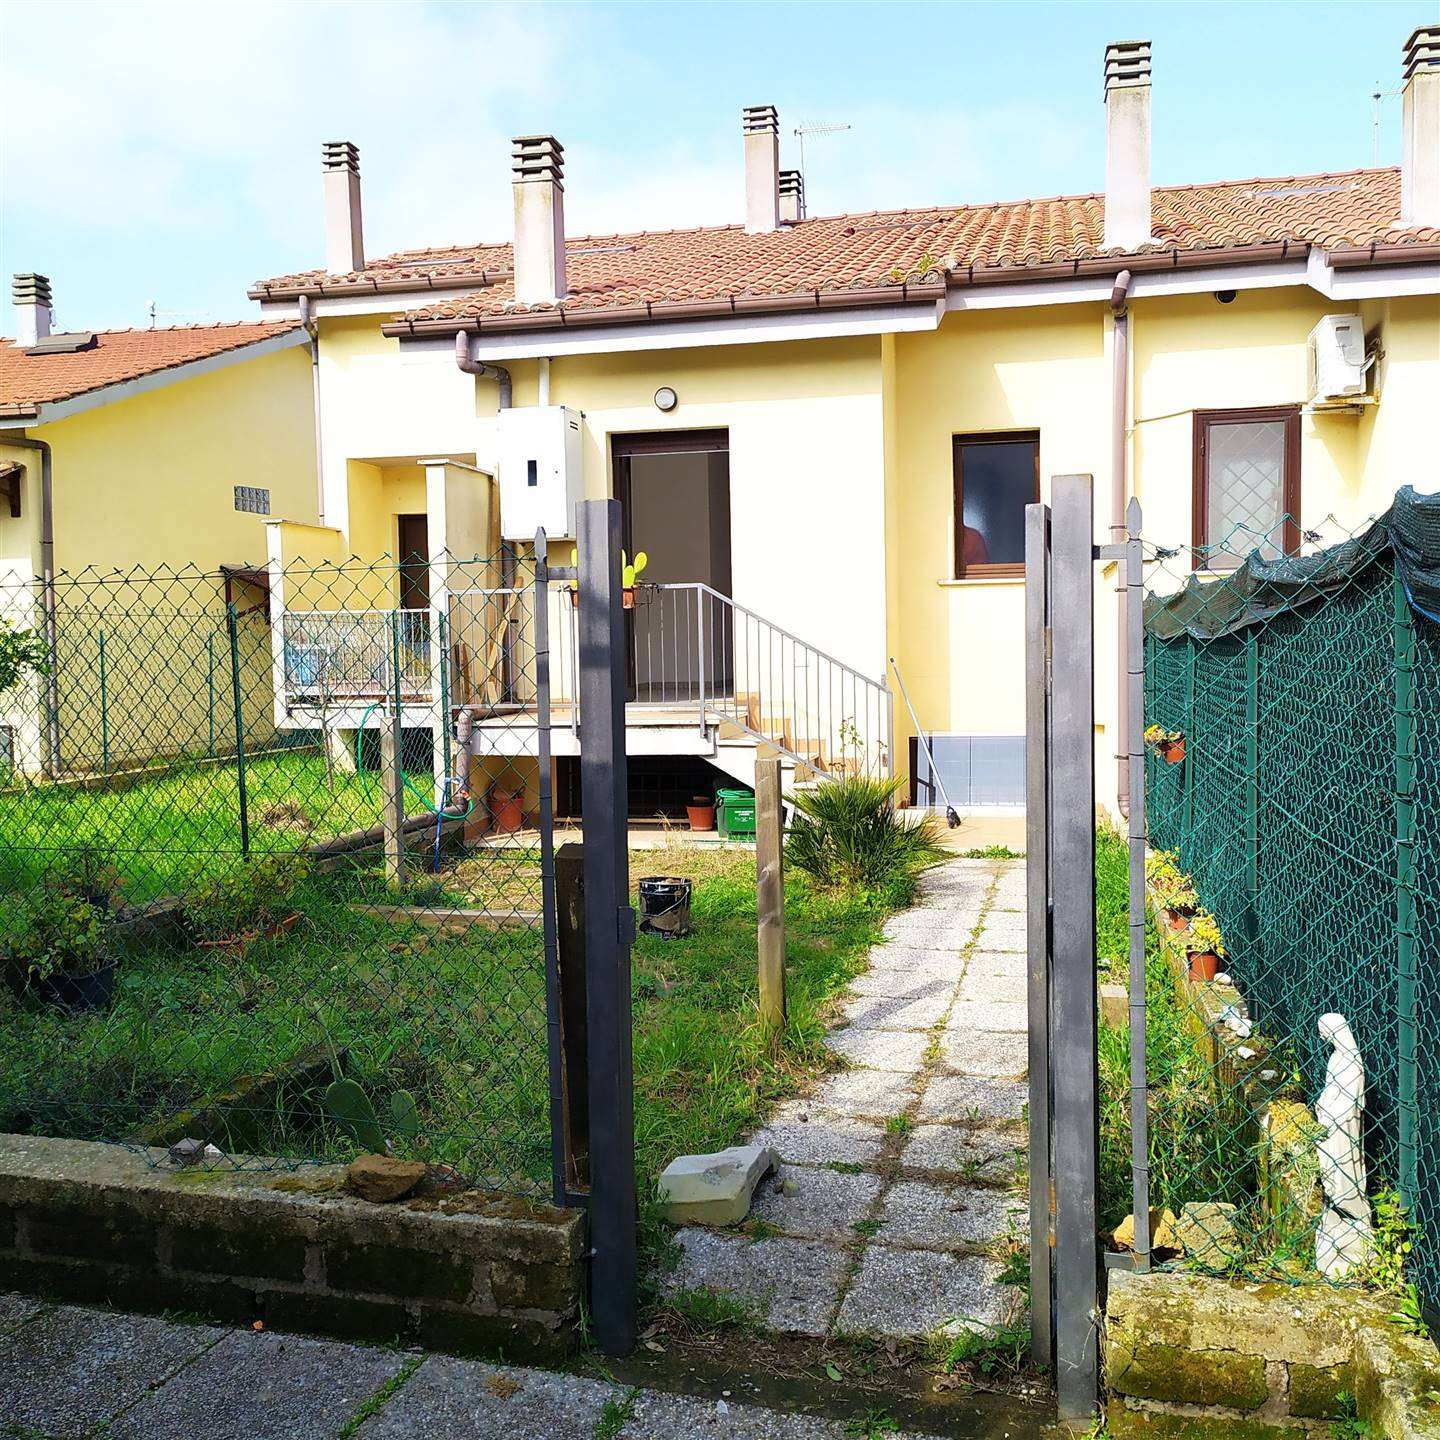 DIVINO AMORE, ROMA, Terraced house for sale of 90 Sq. mt., Excellent Condition, Heating Individual heating system, Energetic class: G, composed by: 4